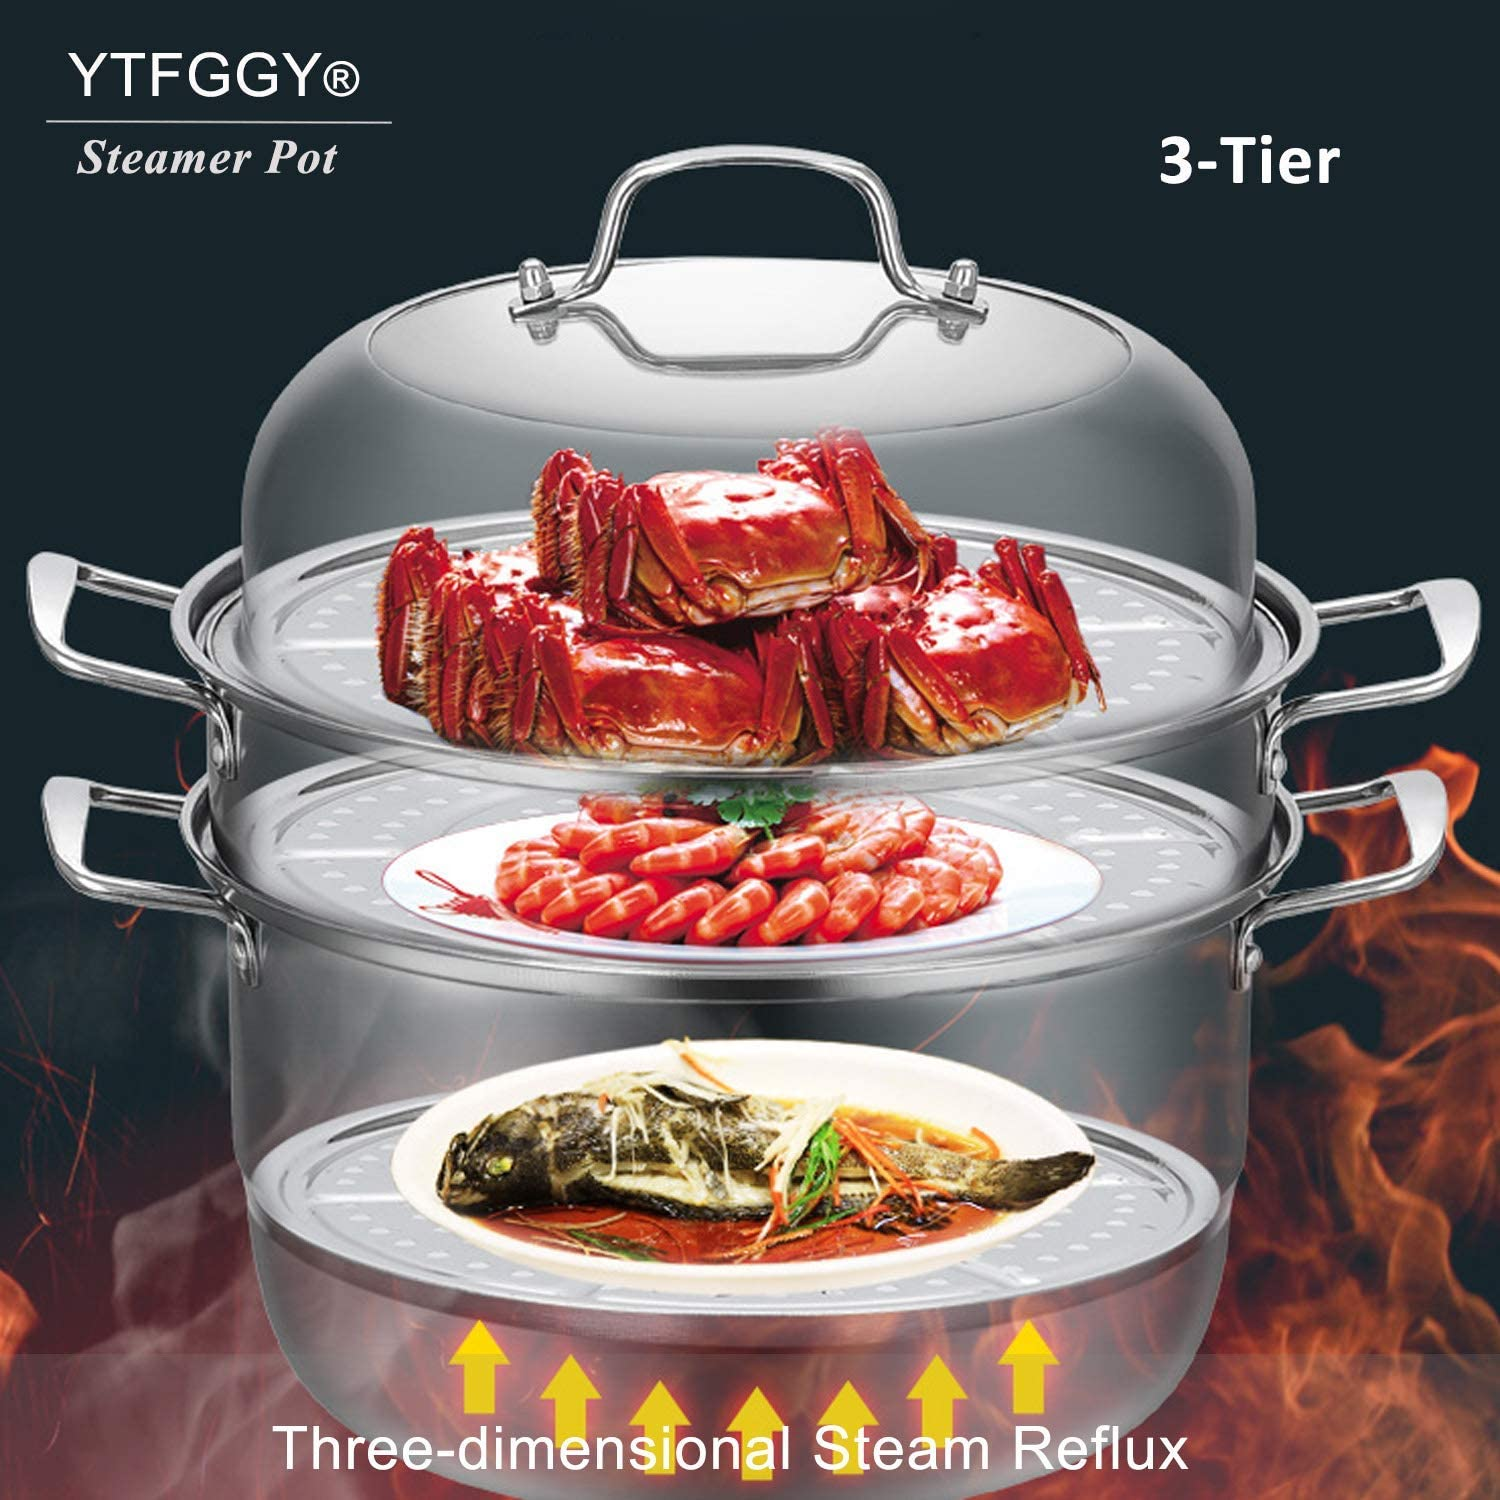 Stainless Steel Steamer Set YTFGGY 3-Tier//Layer Steamer cooking pot steam soup pot and steamer with Pressure Cooker Accessories Saft and Durable stack Double Boilder